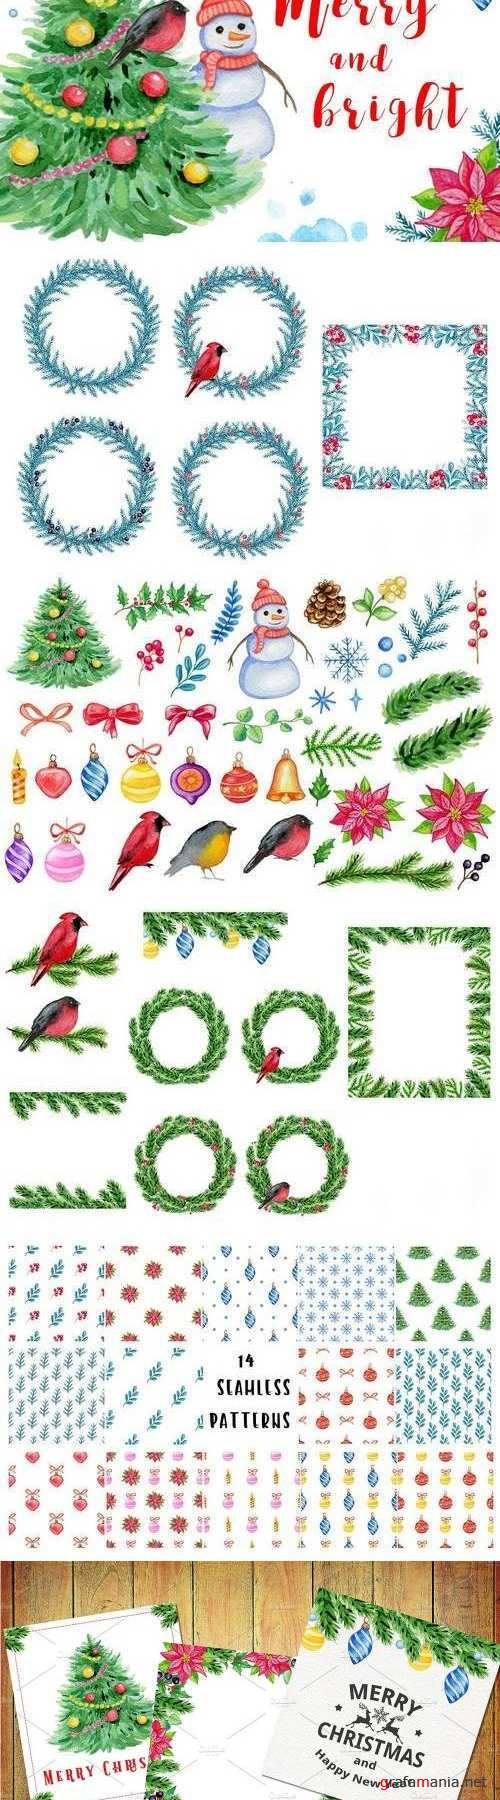 Merry and bright design kit - 2103144